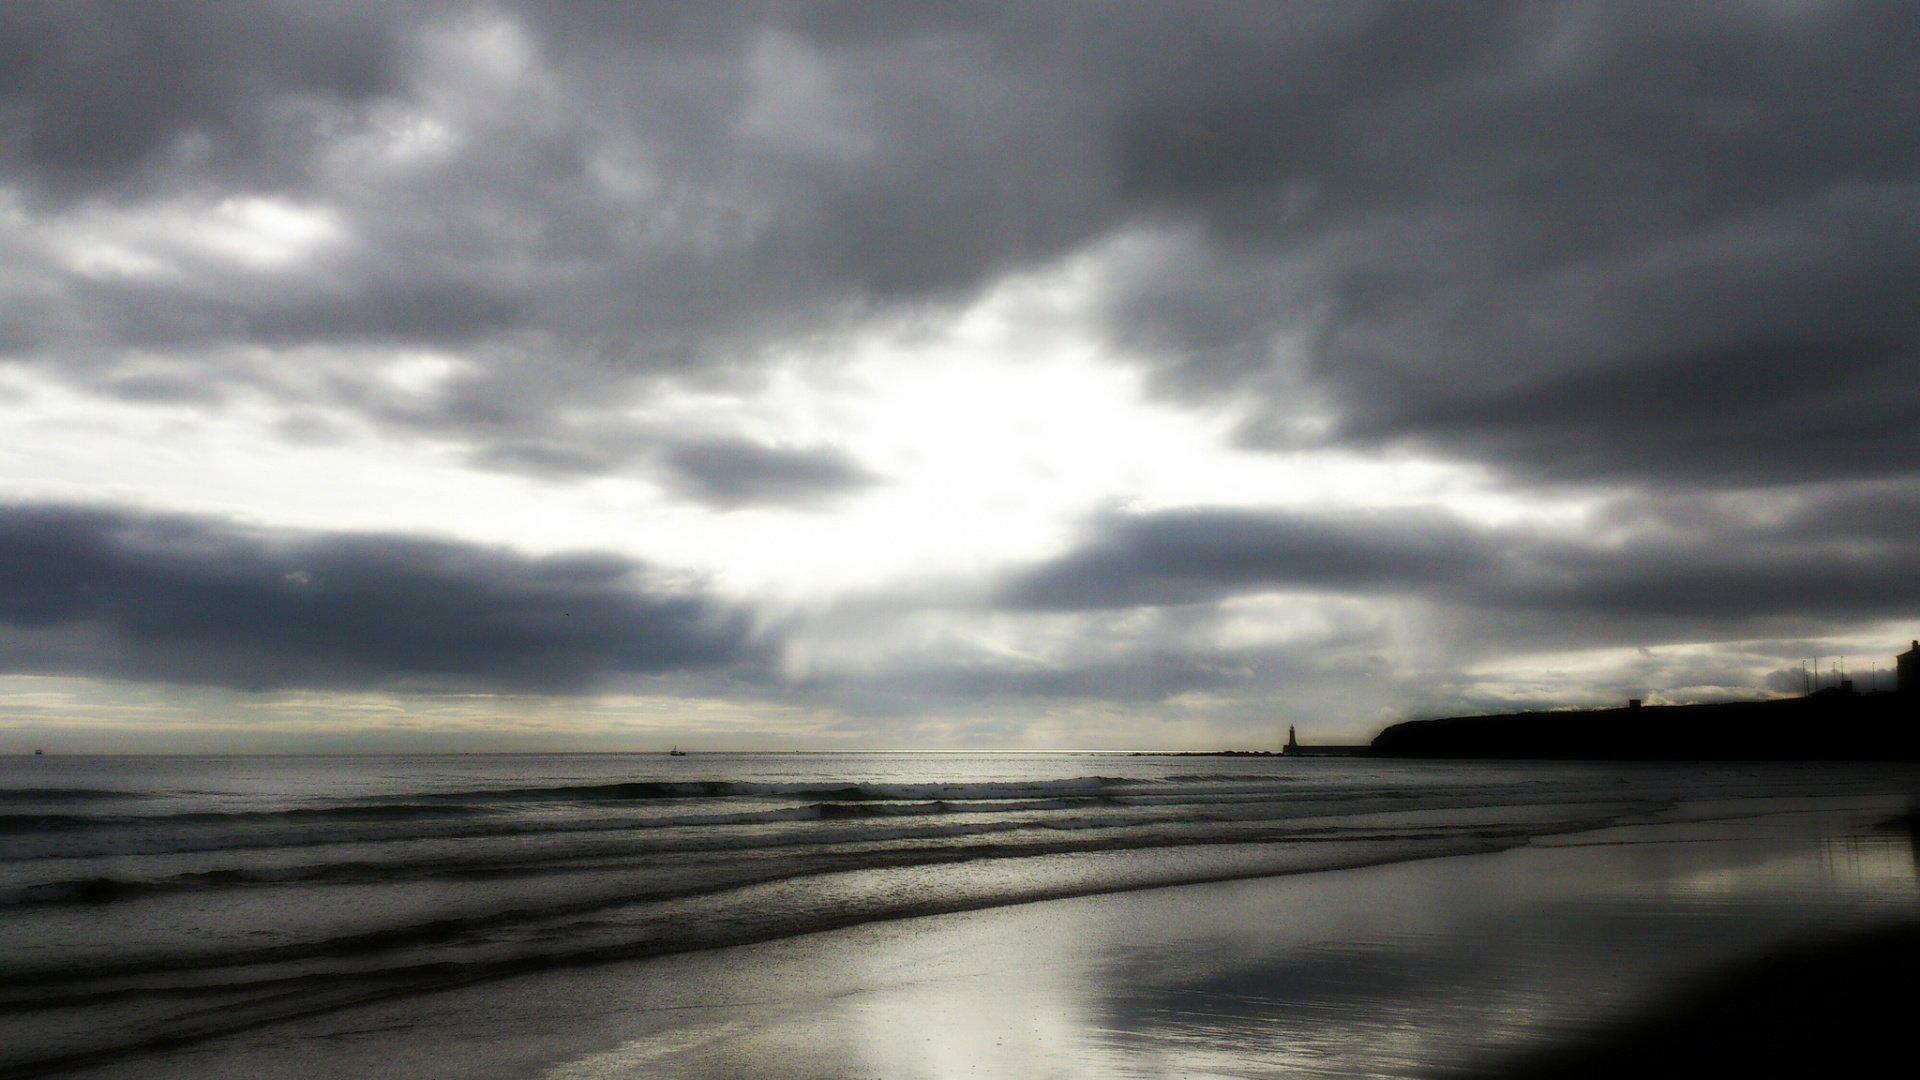 bradt's photo of Tynemouth - Longsands